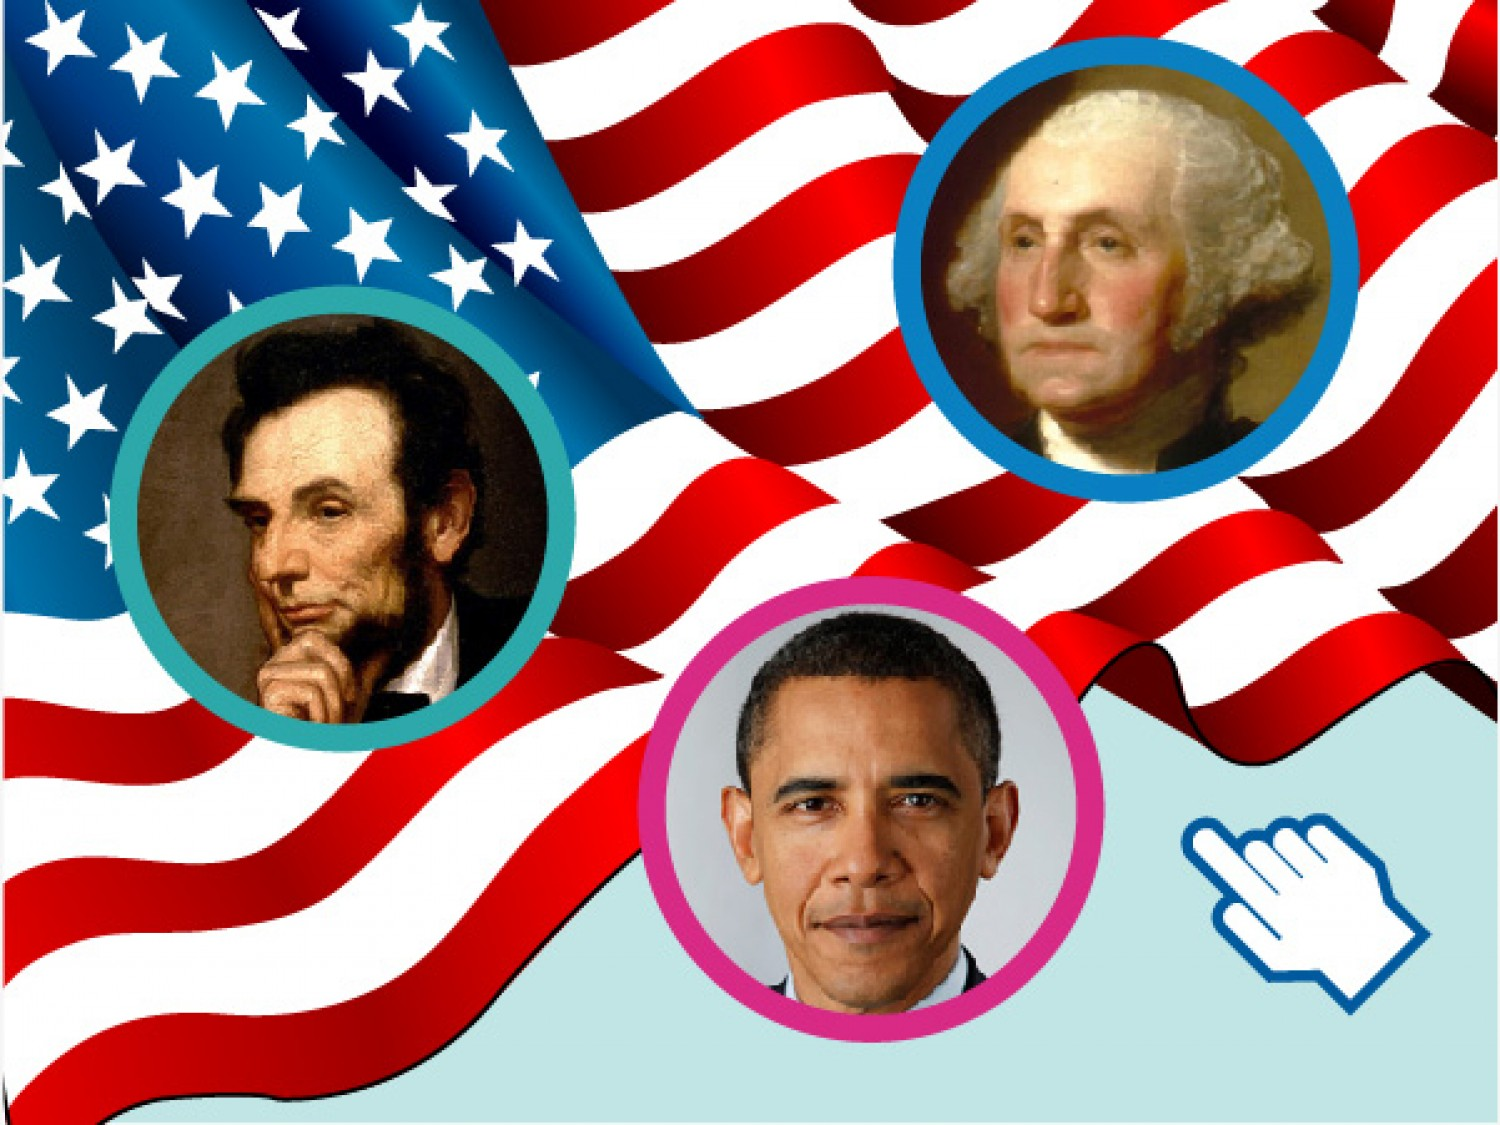 The Presidents Of The United States Of America Backgrounds, Compatible - PC, Mobile, Gadgets| 1500x1125 px